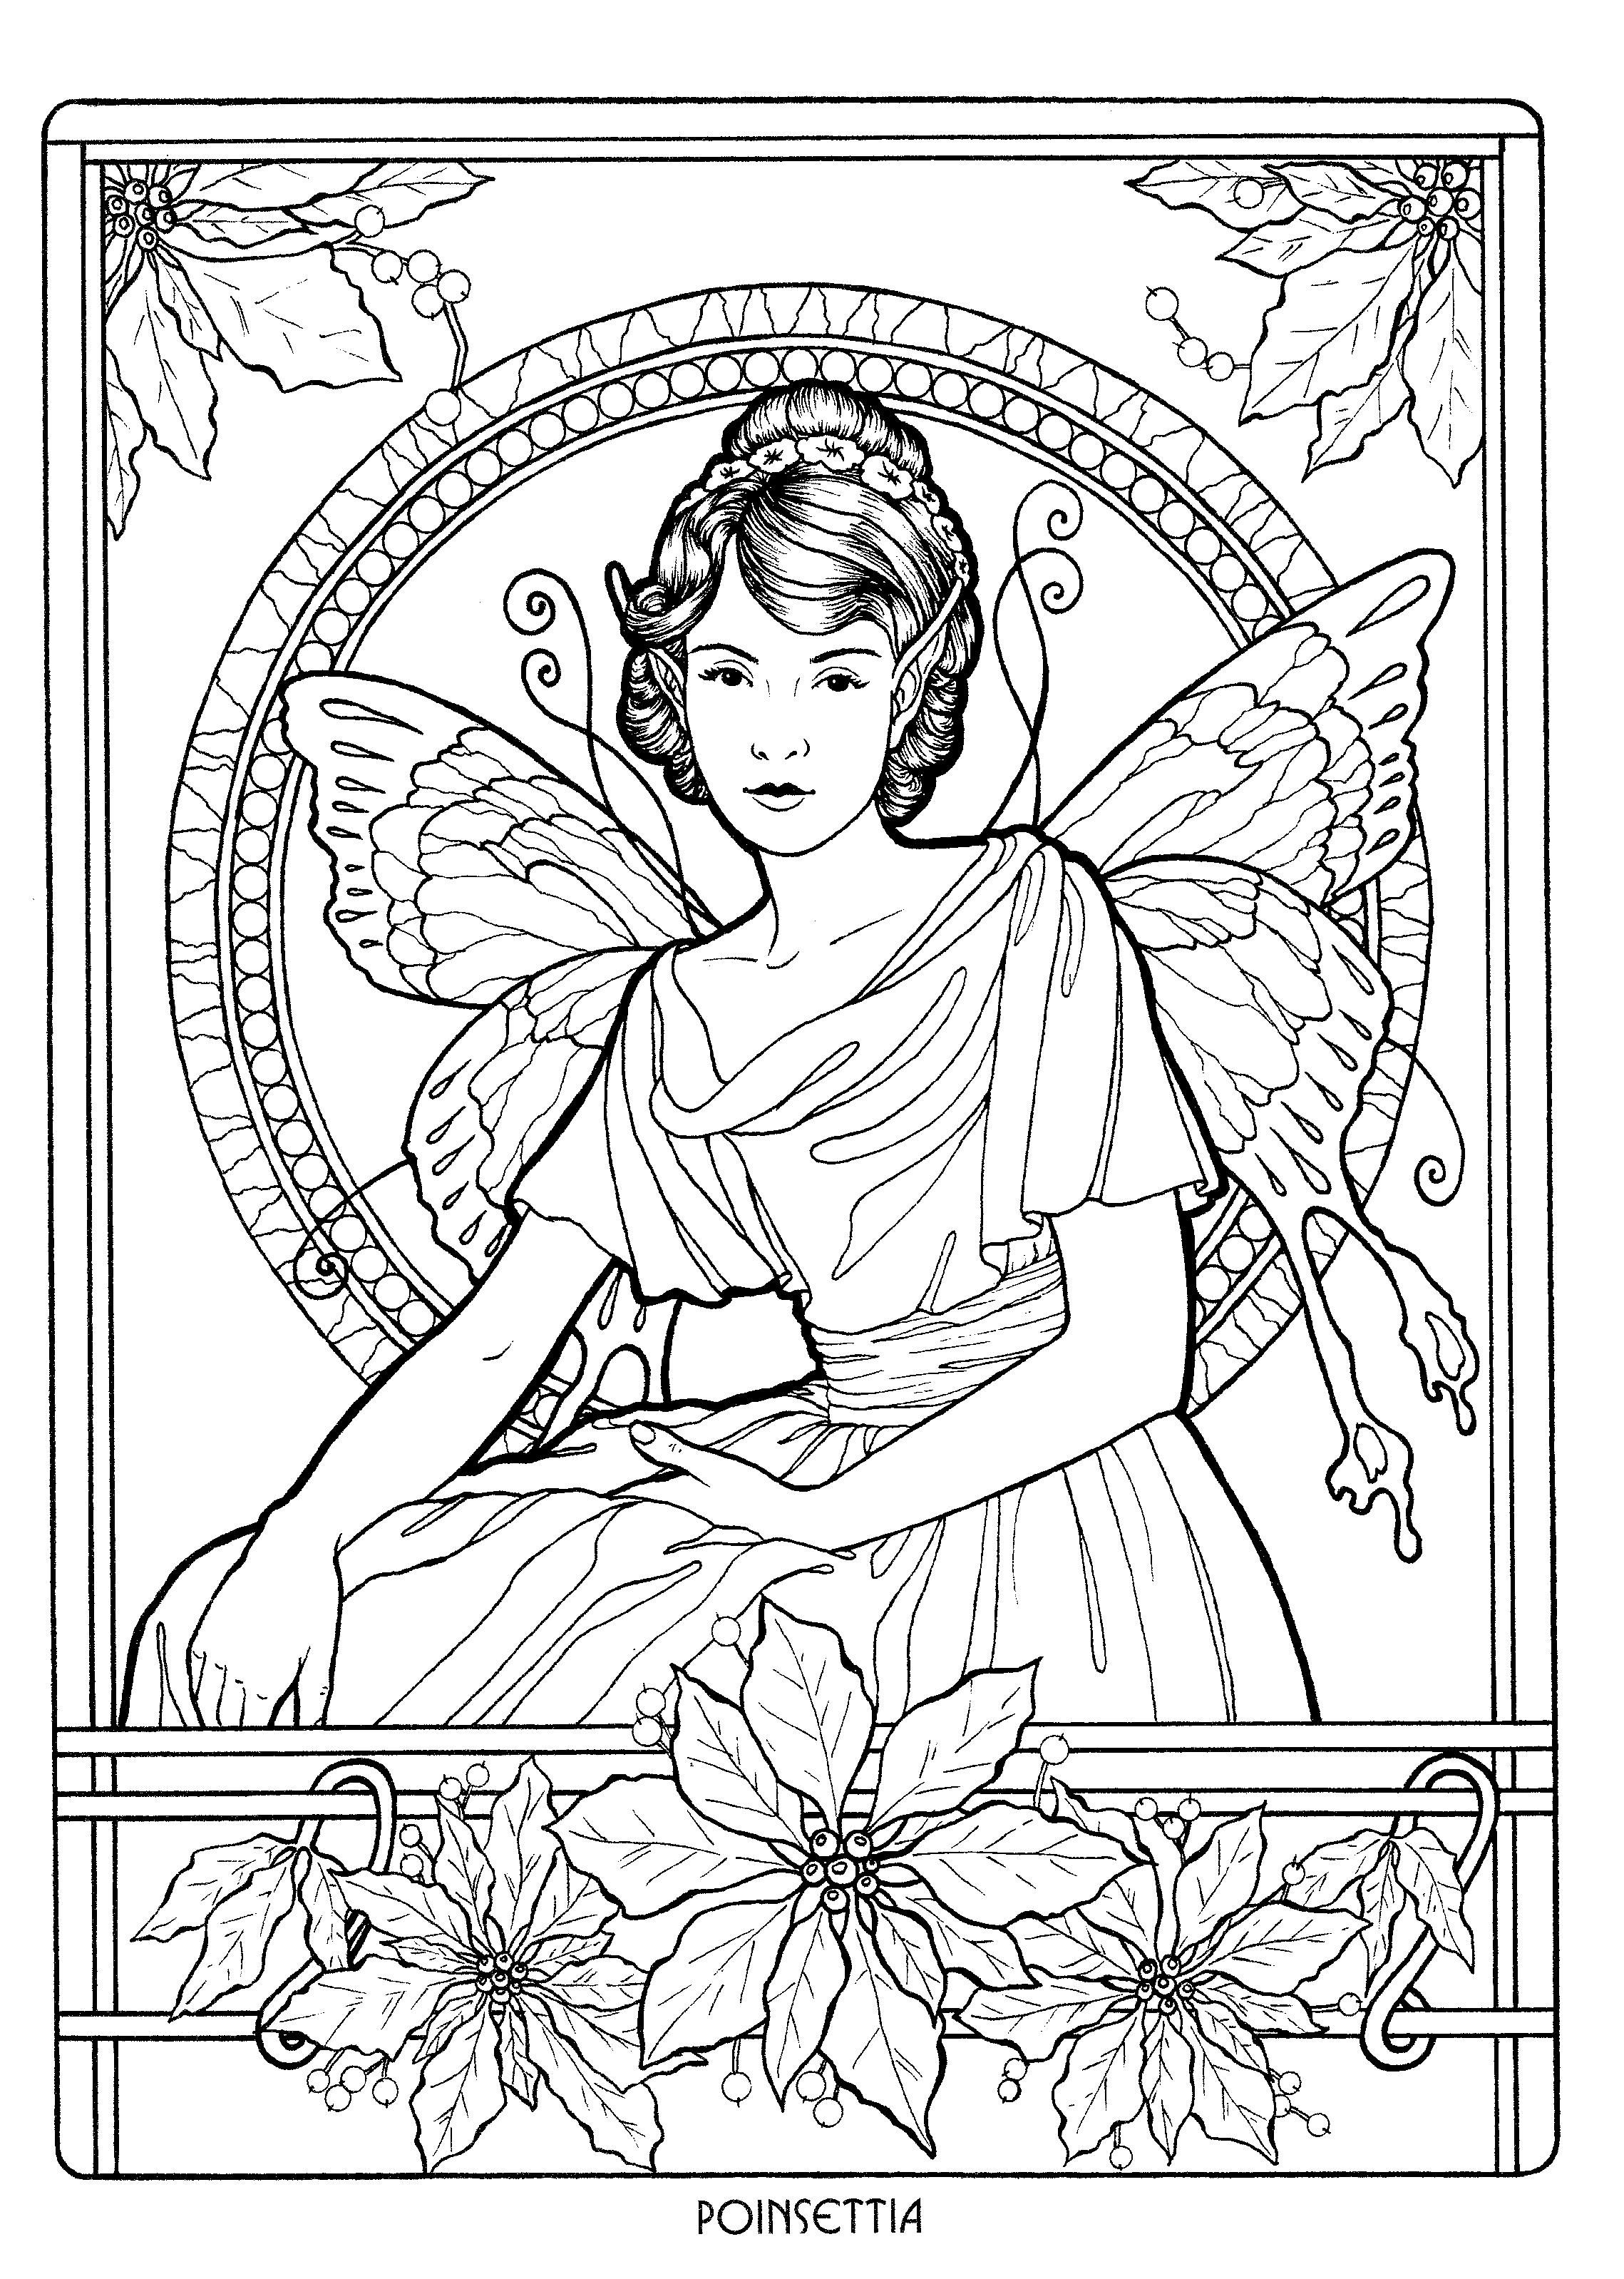 Fairy 12 | Art I Like | Pinterest | Fairy, Adult coloring and ...